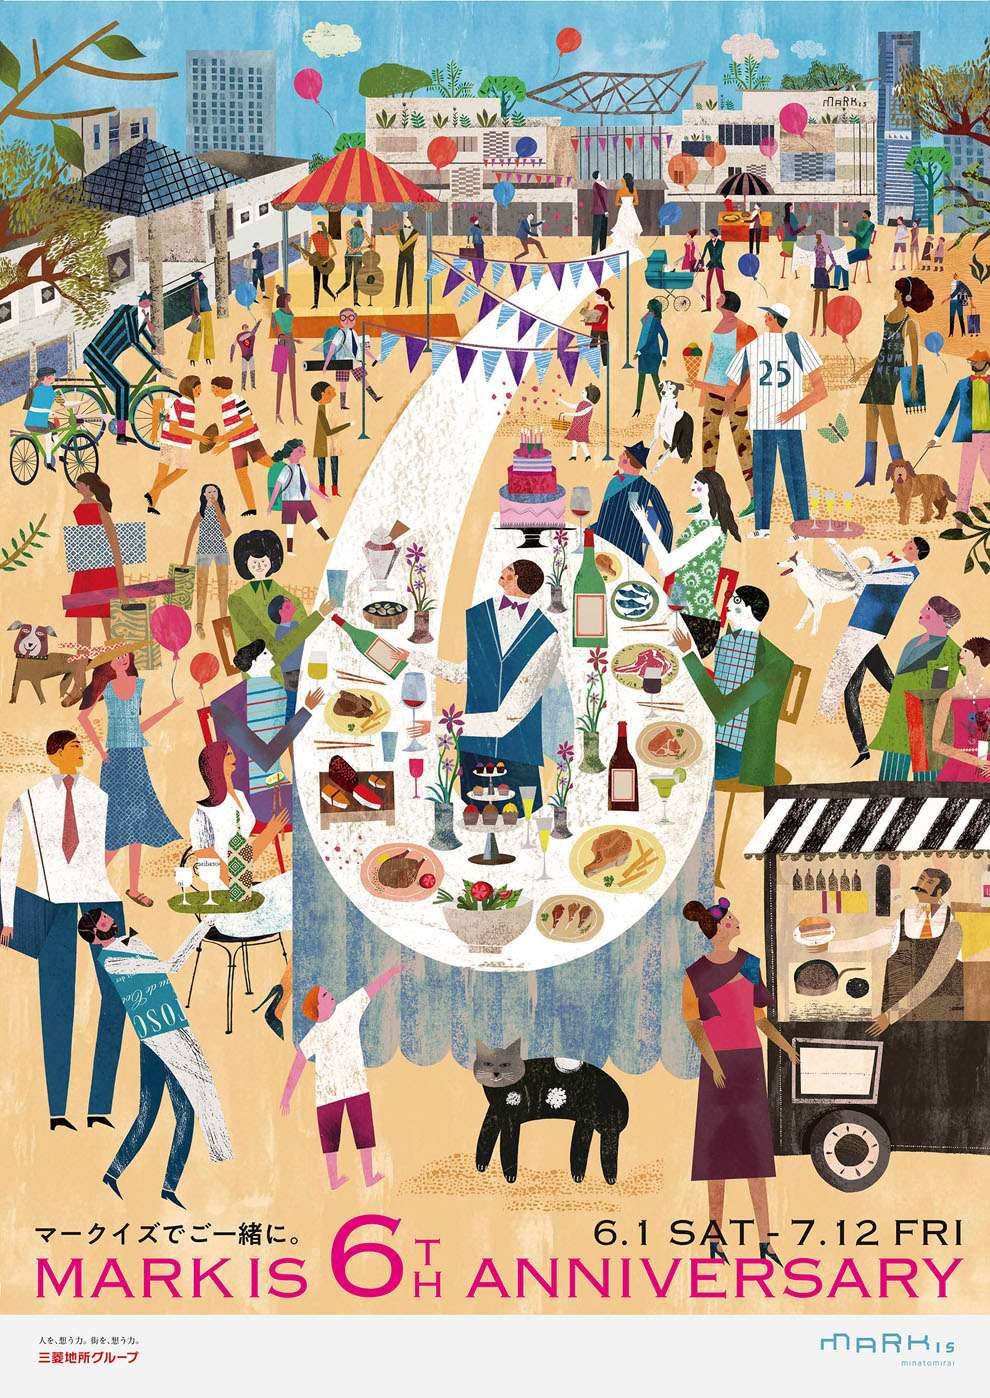 Martin Haake, Collaged playful illustration for a 6th anniversary poster, with crowds of people eating and drinking.